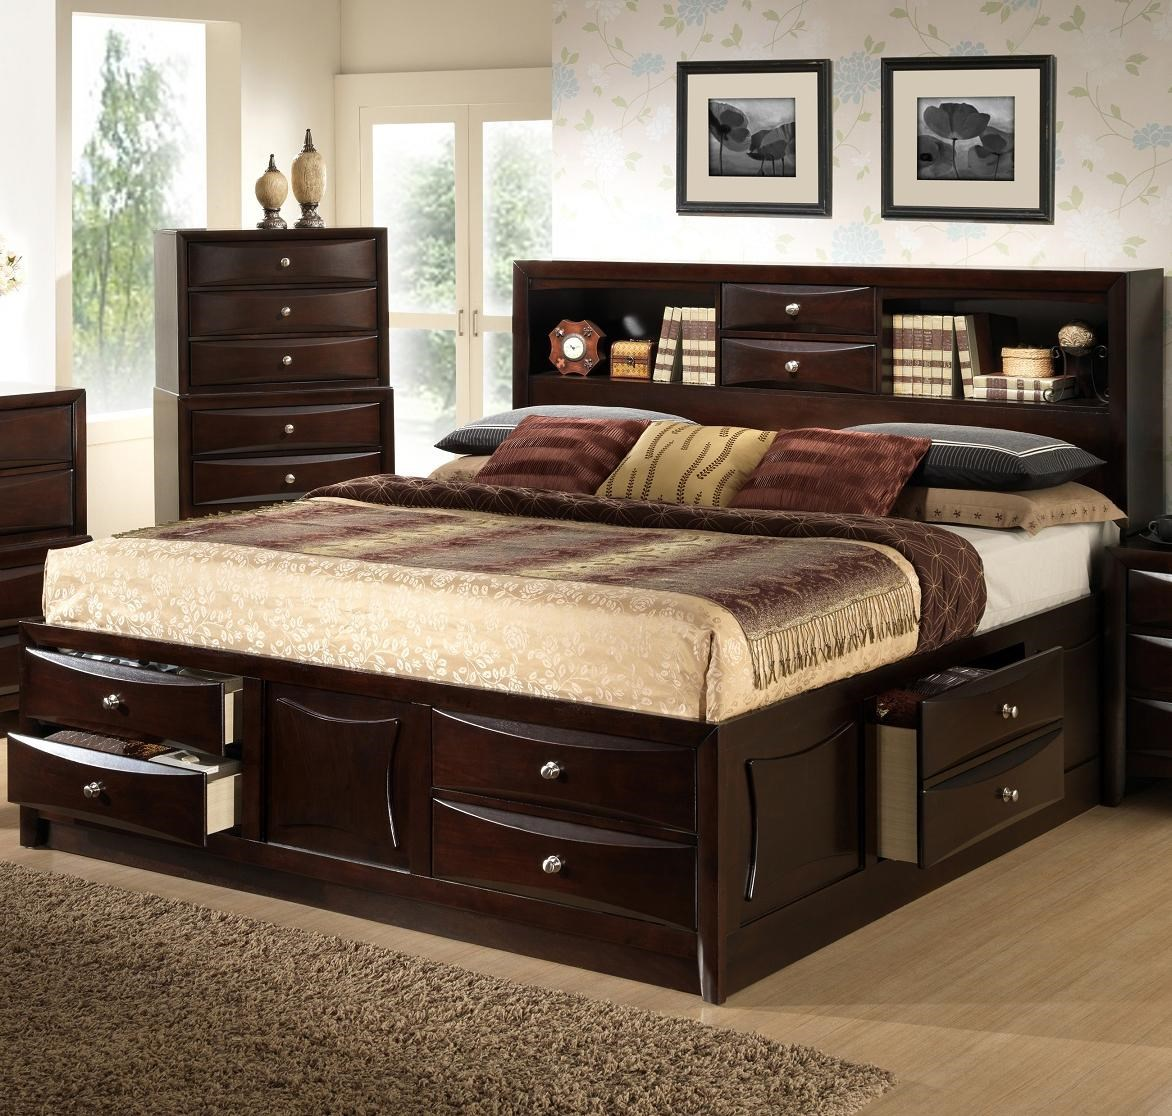 Todd Queen Bookcase Bed With Storage